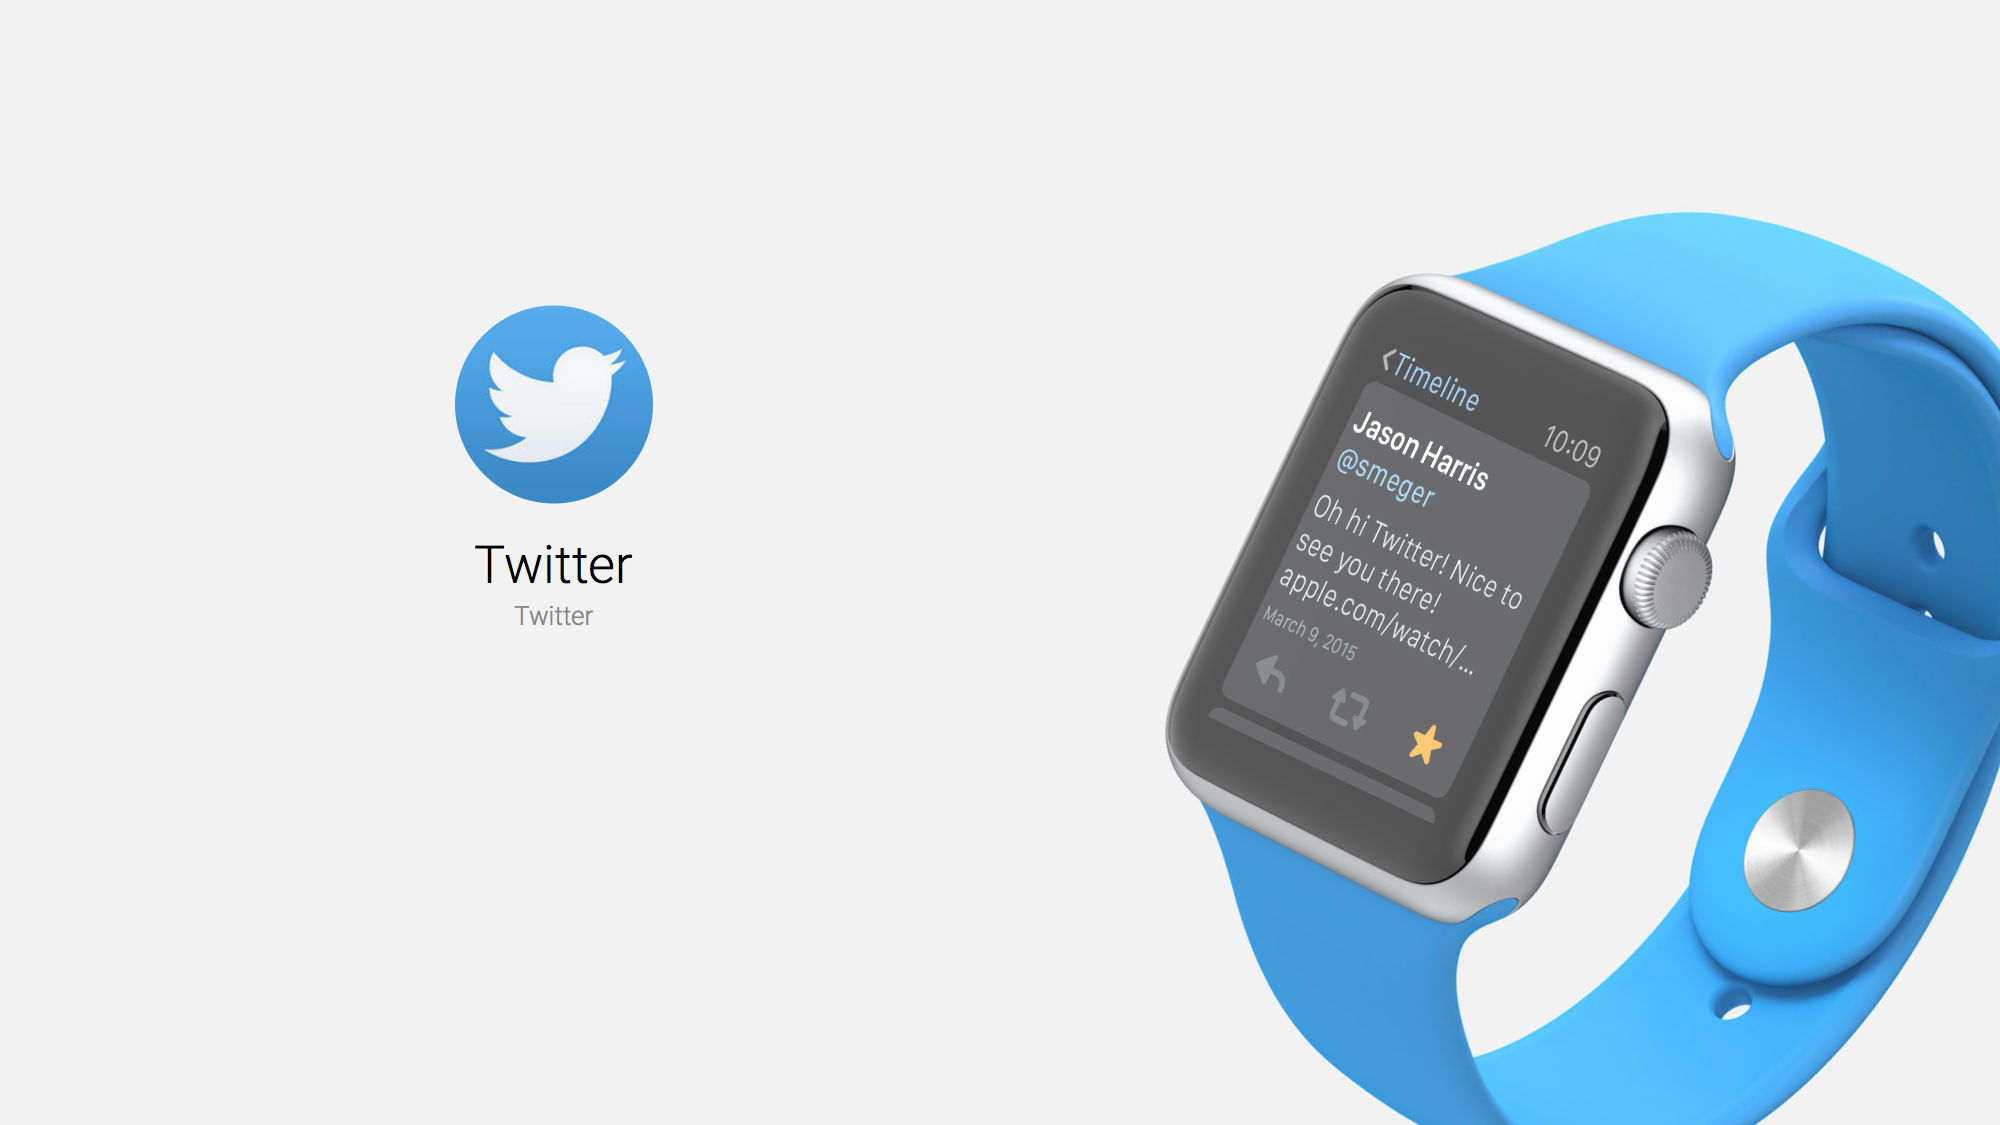 Twitter Brings the Social Media Giant to Your Wrist